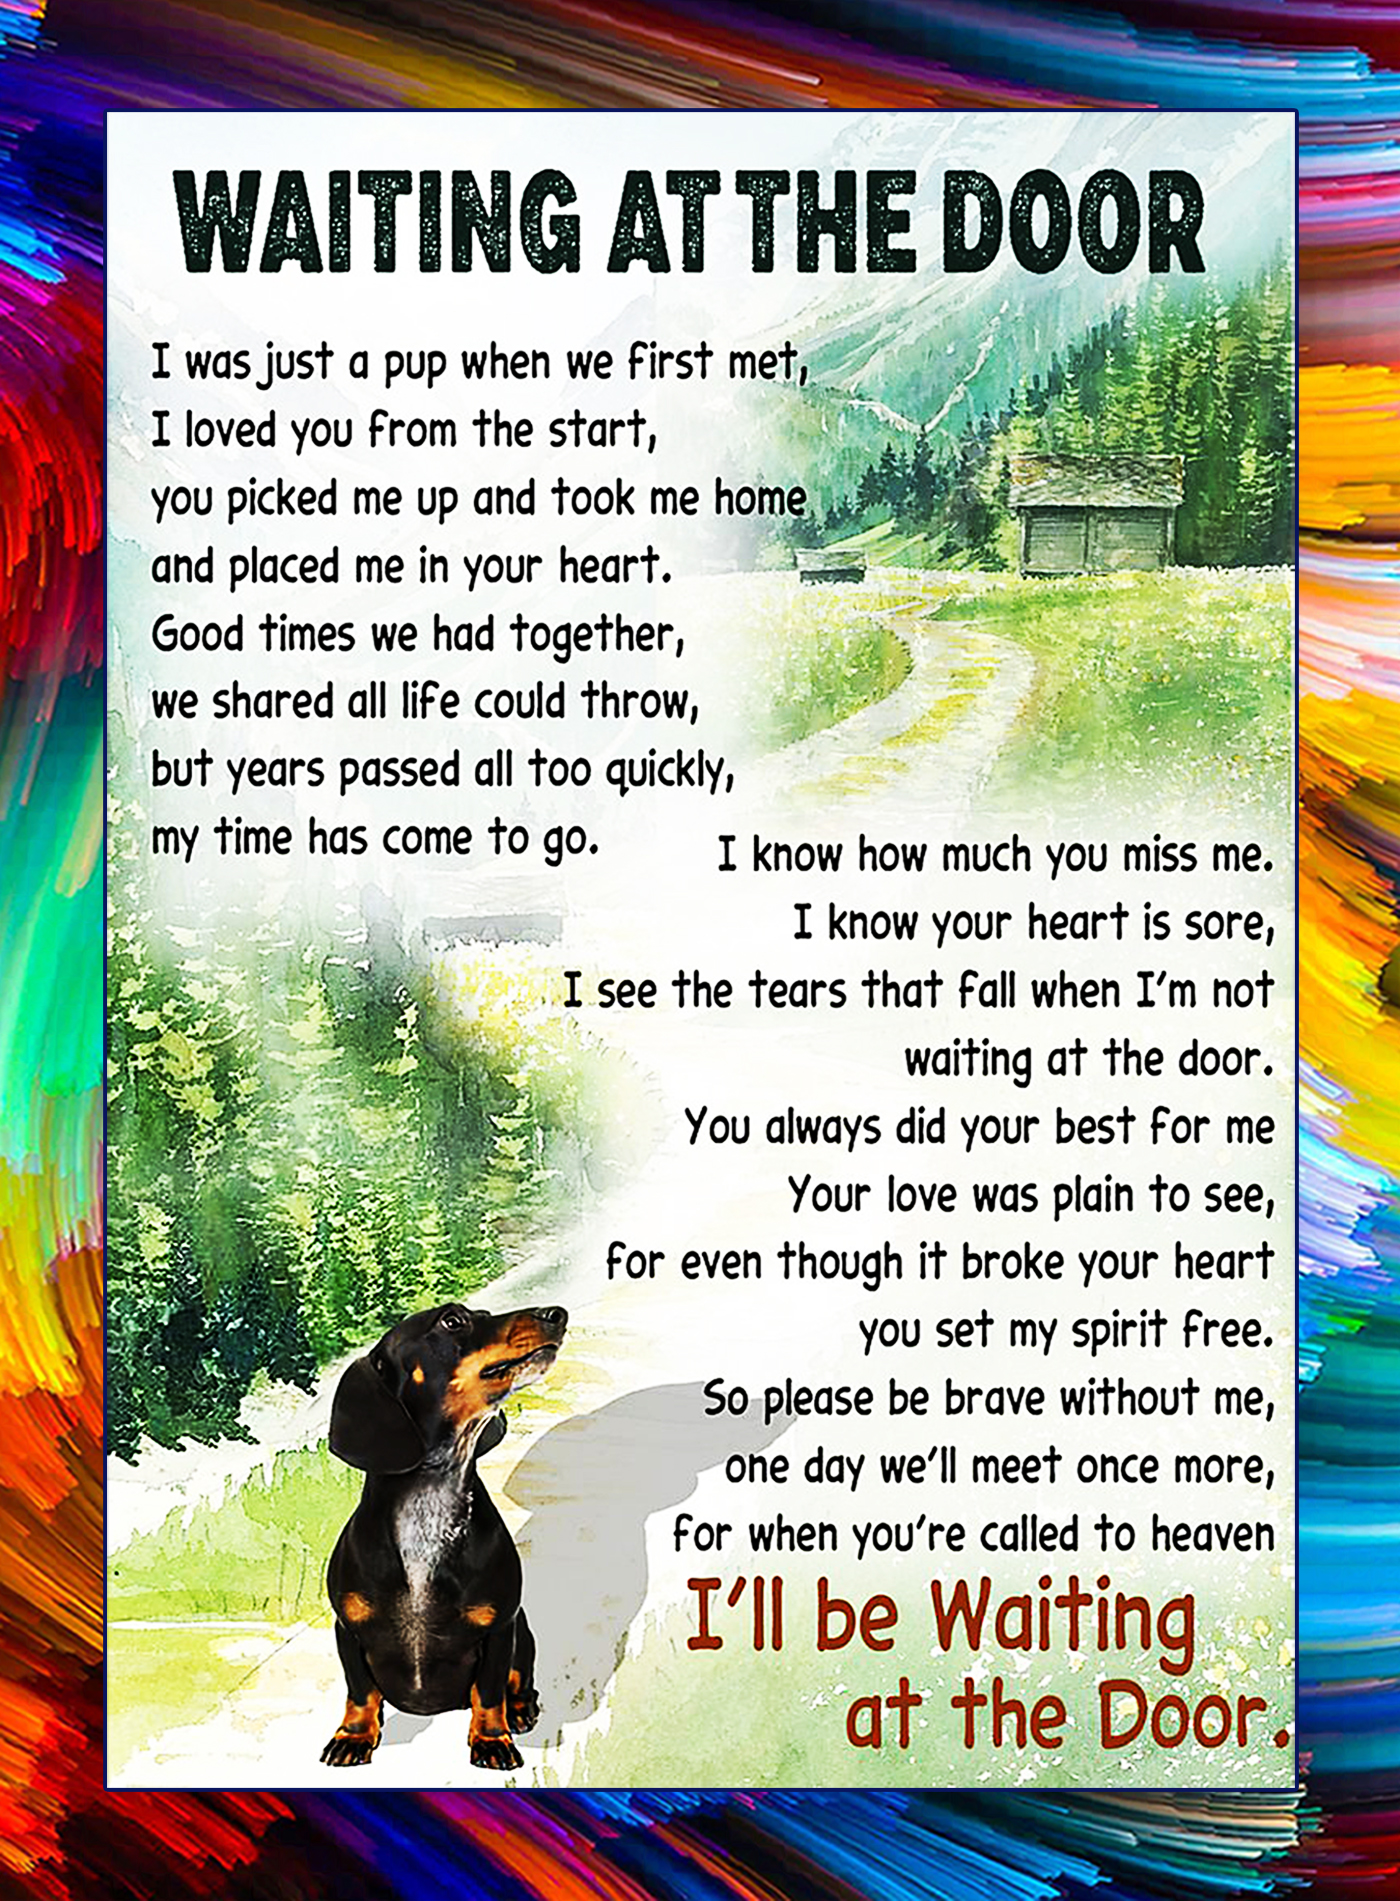 Dachshund waiting at the door poster - A1